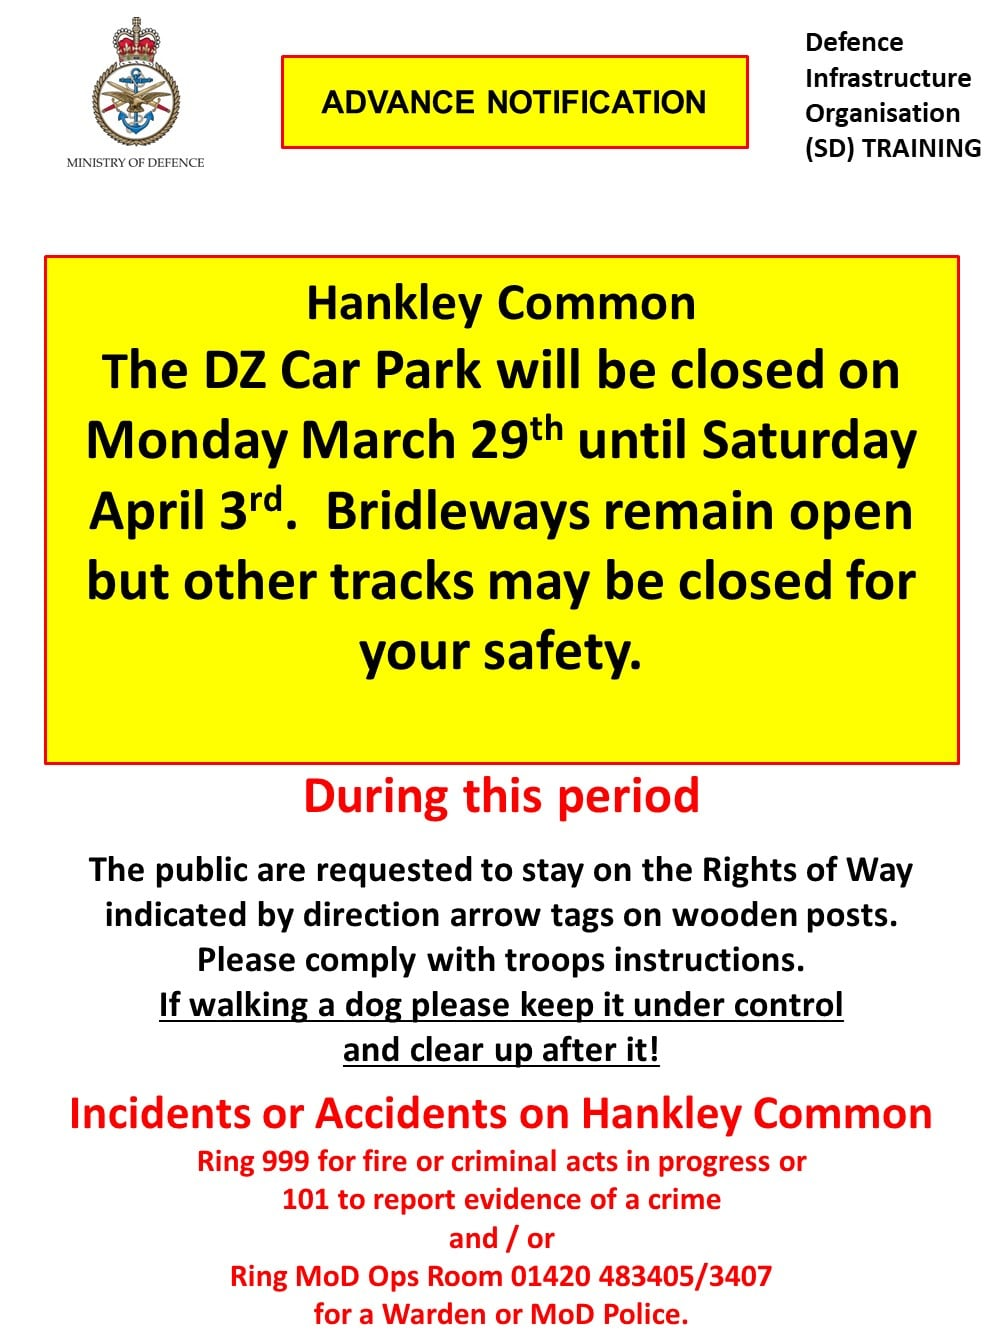 Hankley Common Car Park closed Monday 29th March – Saturday 3rd April